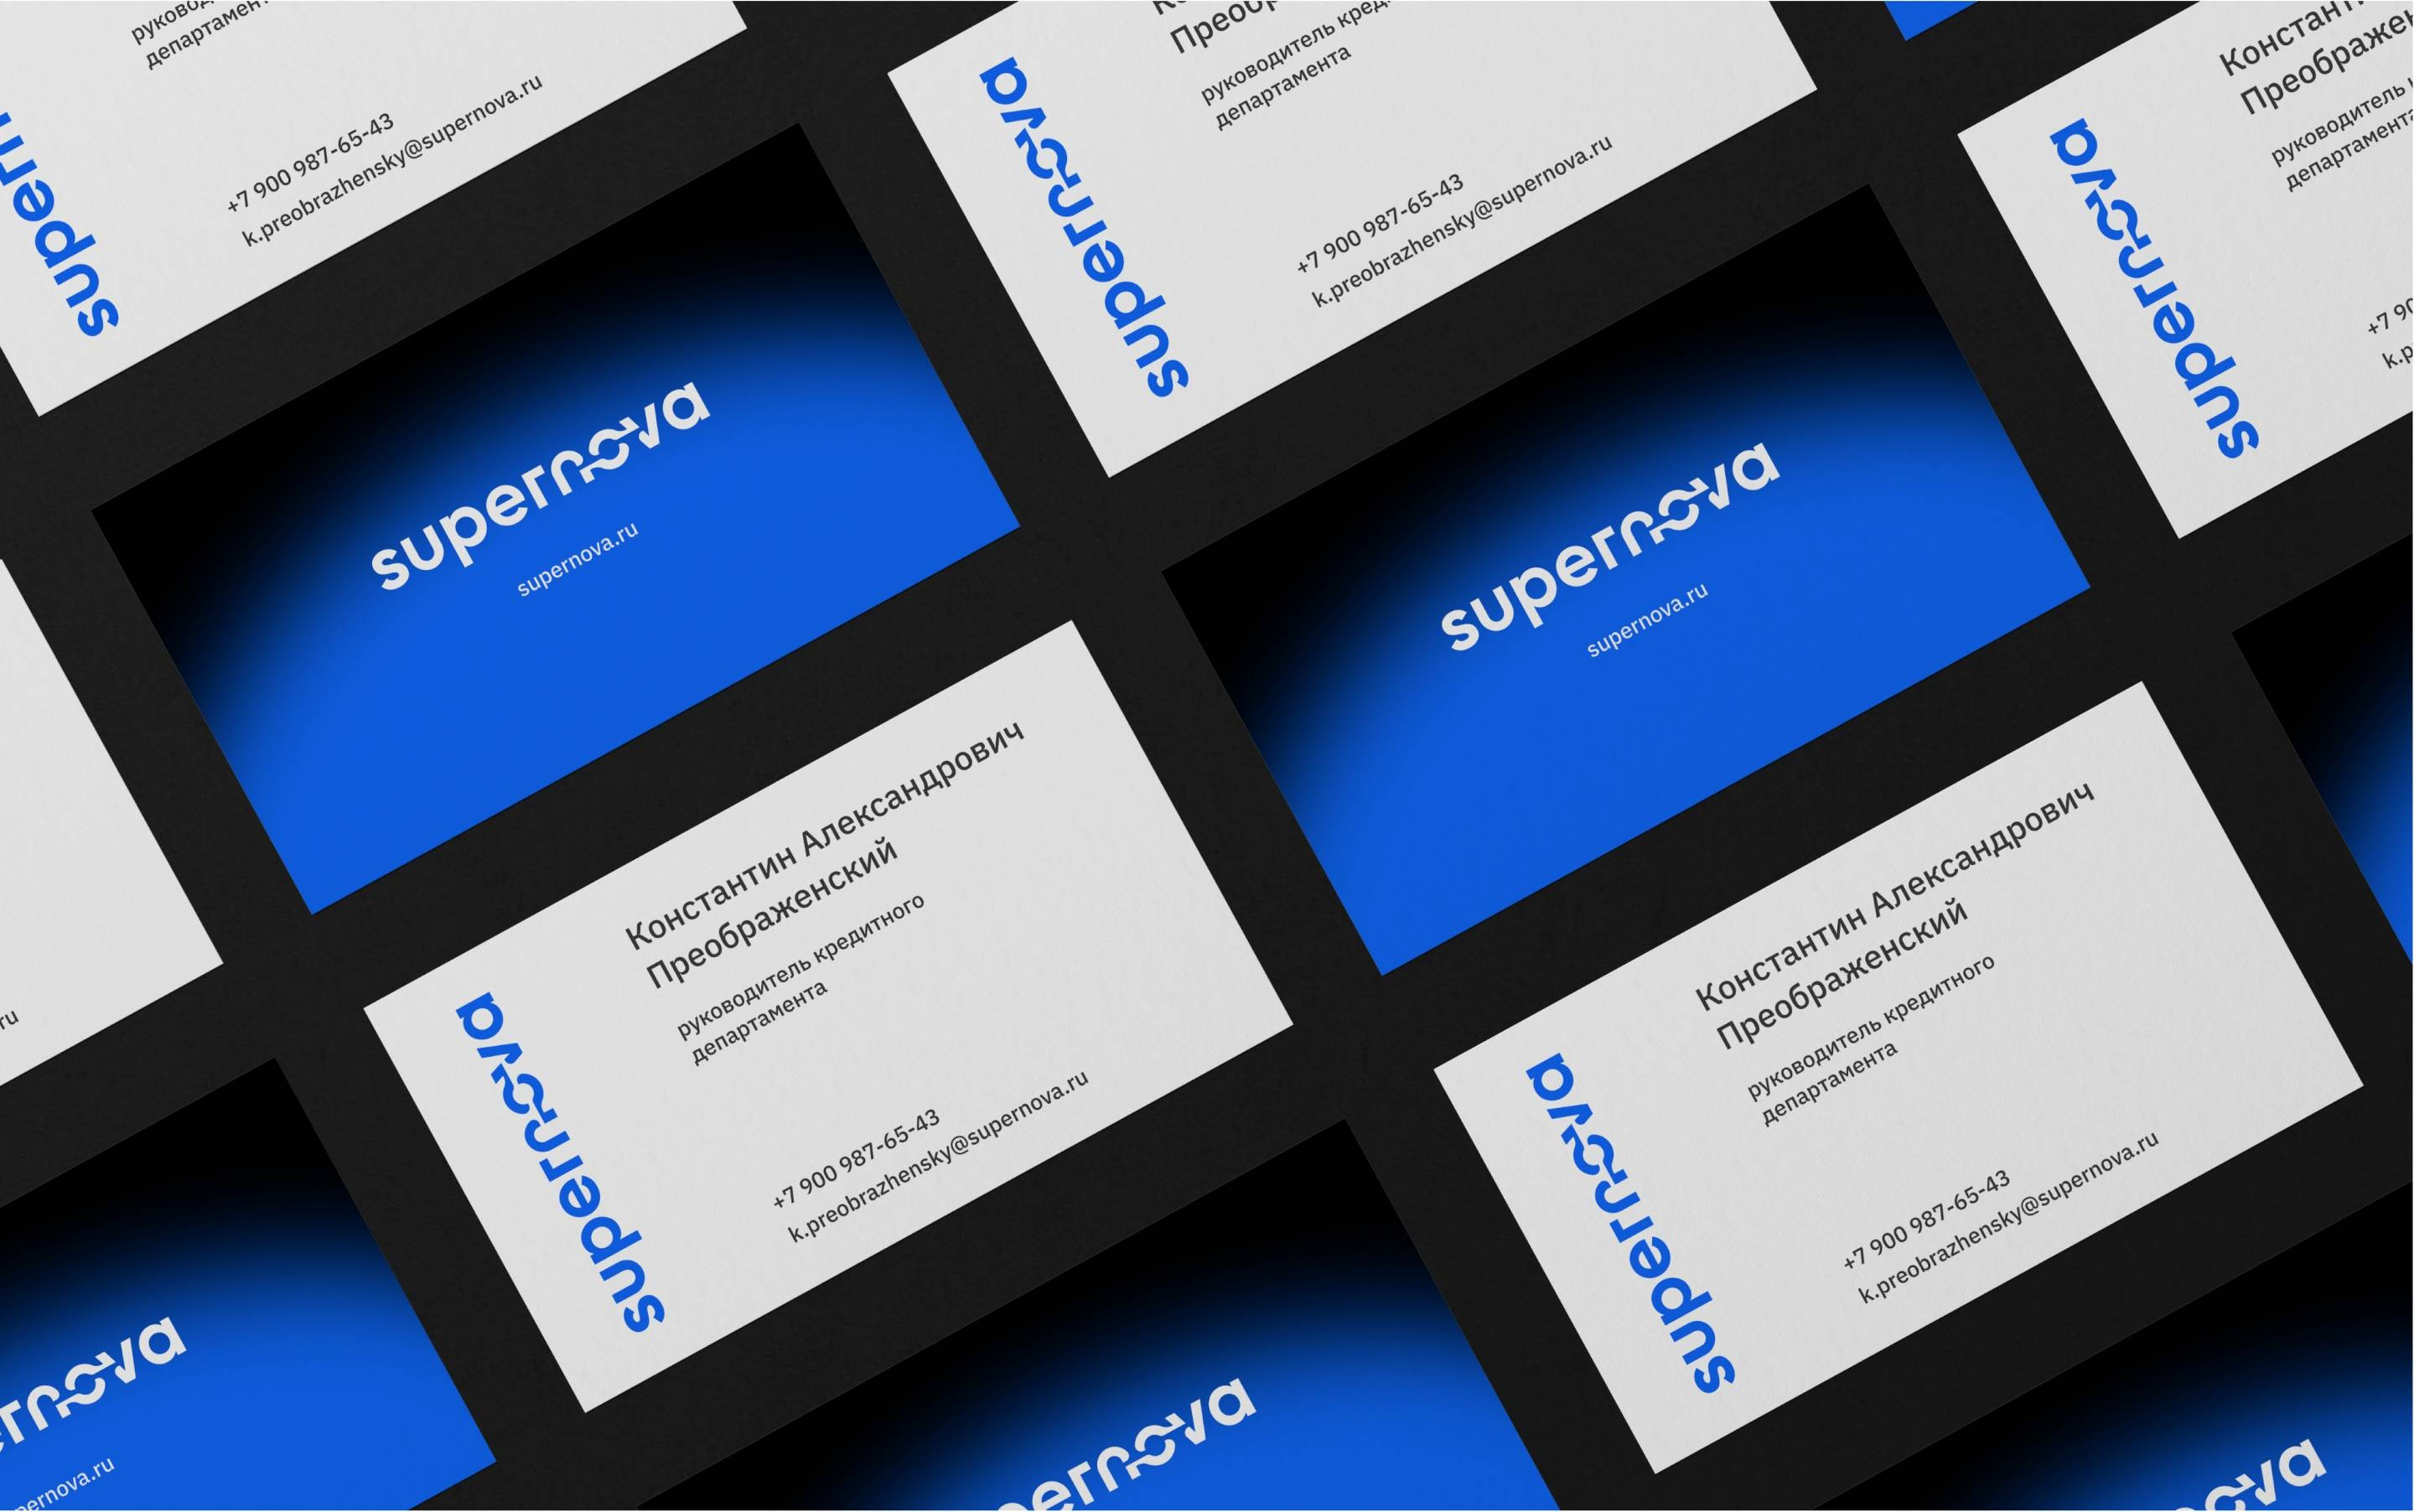 Brand and corporate identities